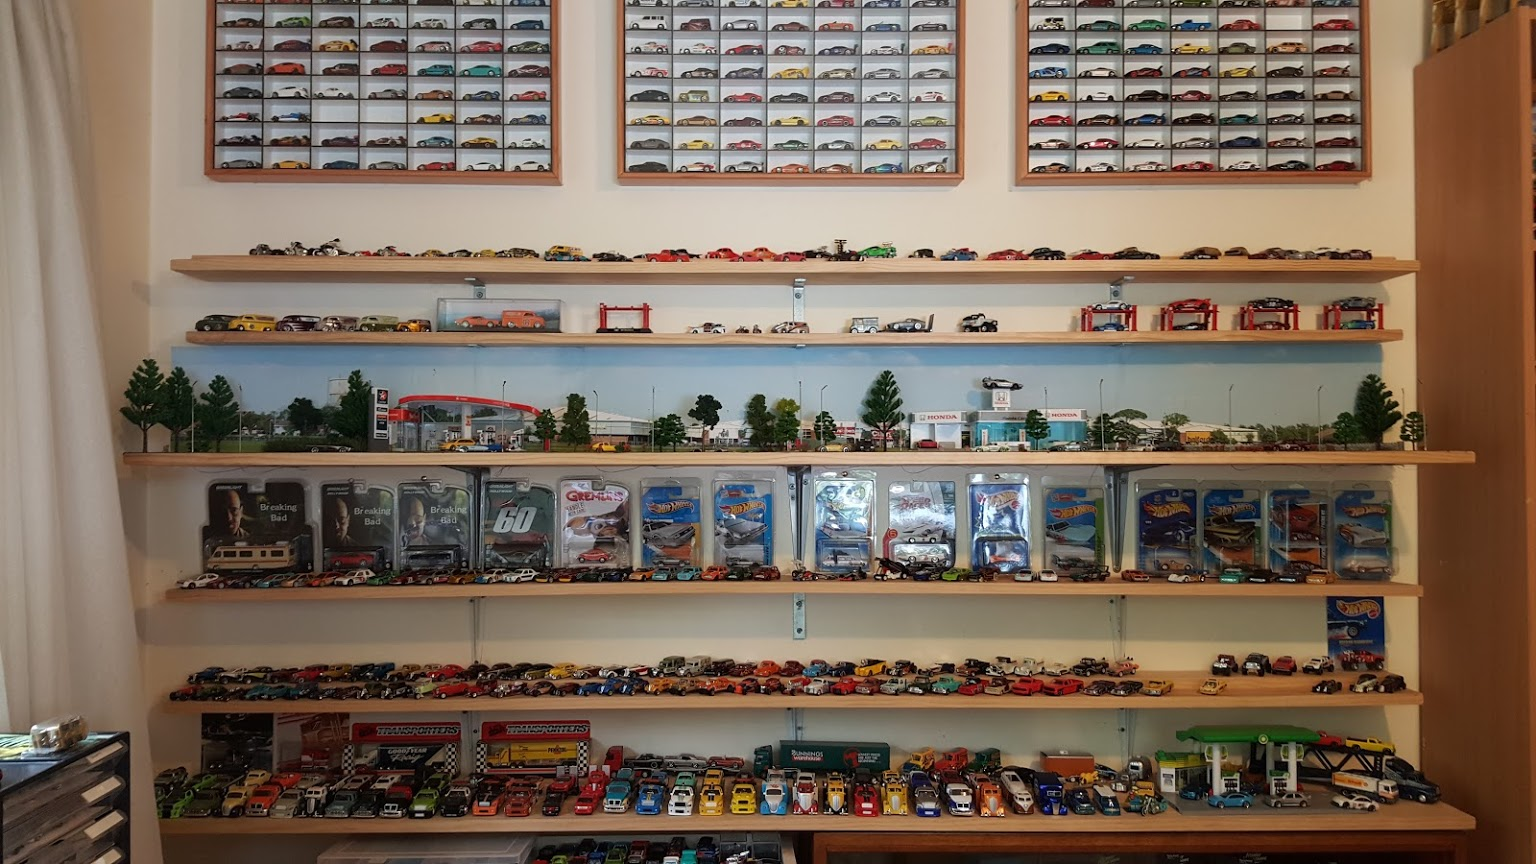 plain car garage ideas - My Diecast Cars & Hotwheels Collection Video Walk Through